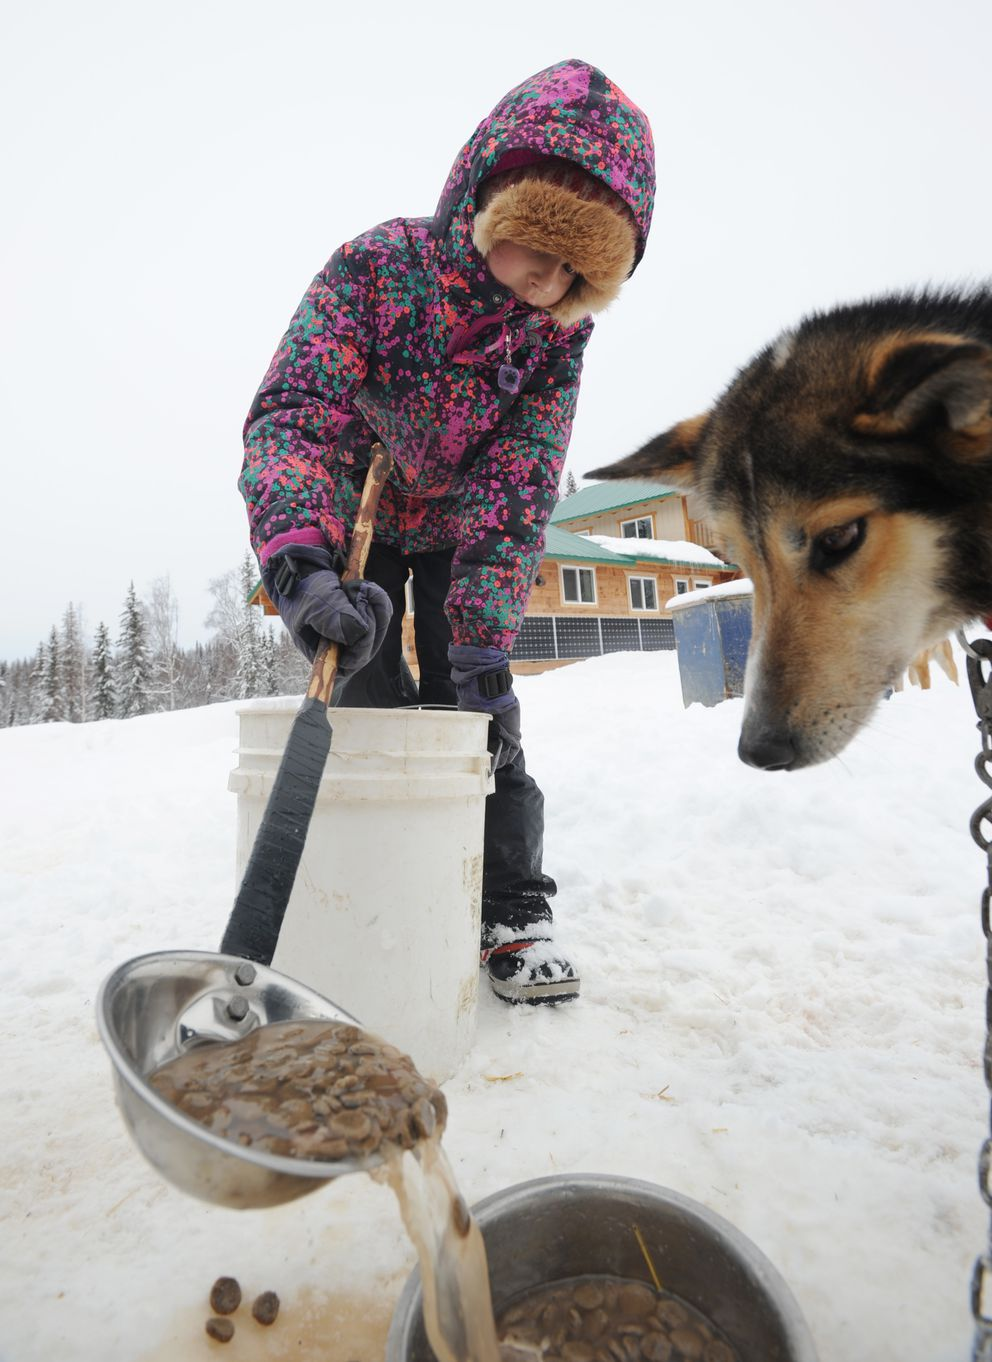 Following a run, Ava Smyth, 10, feeds the dogs a chunky broth to make sure they are fed and hydrated. (Erik Hill / Alaska Dispatch News)